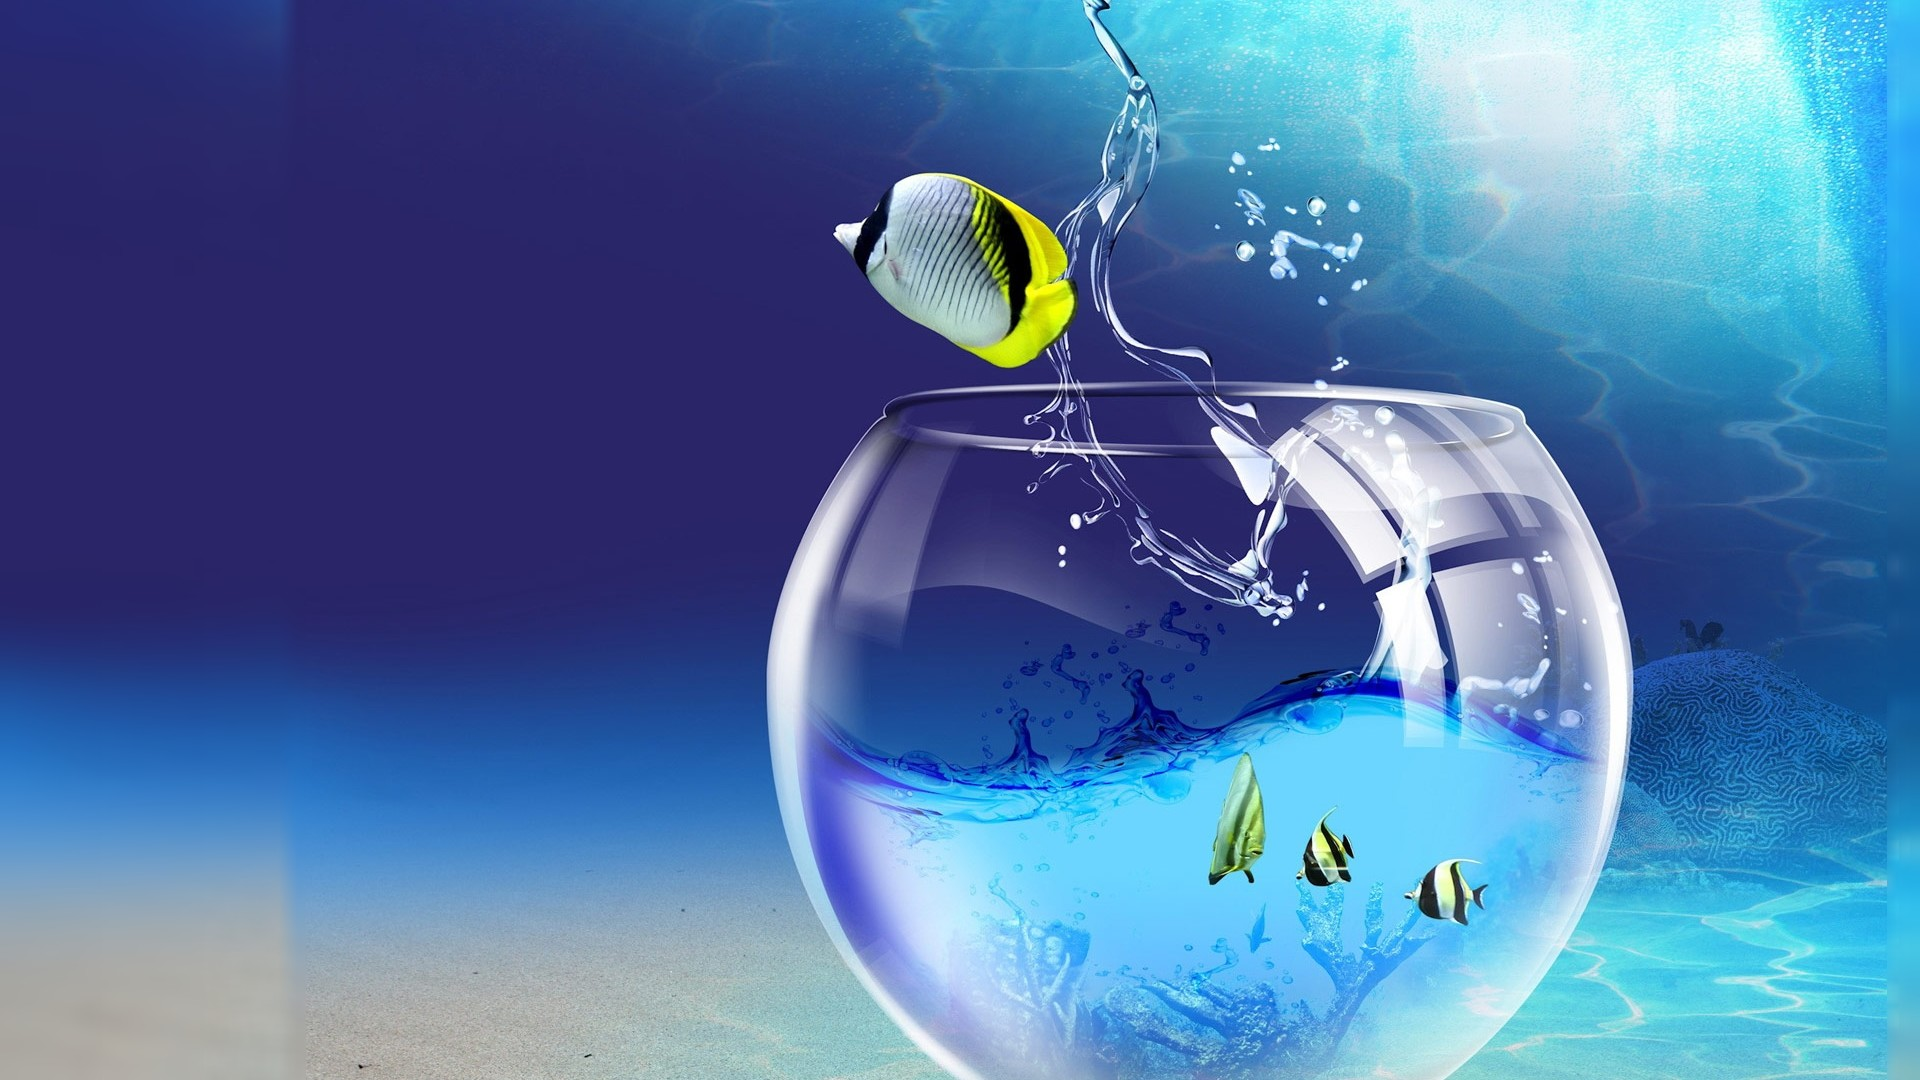 the fish in running 3d wallpaper pc hd wallpapers